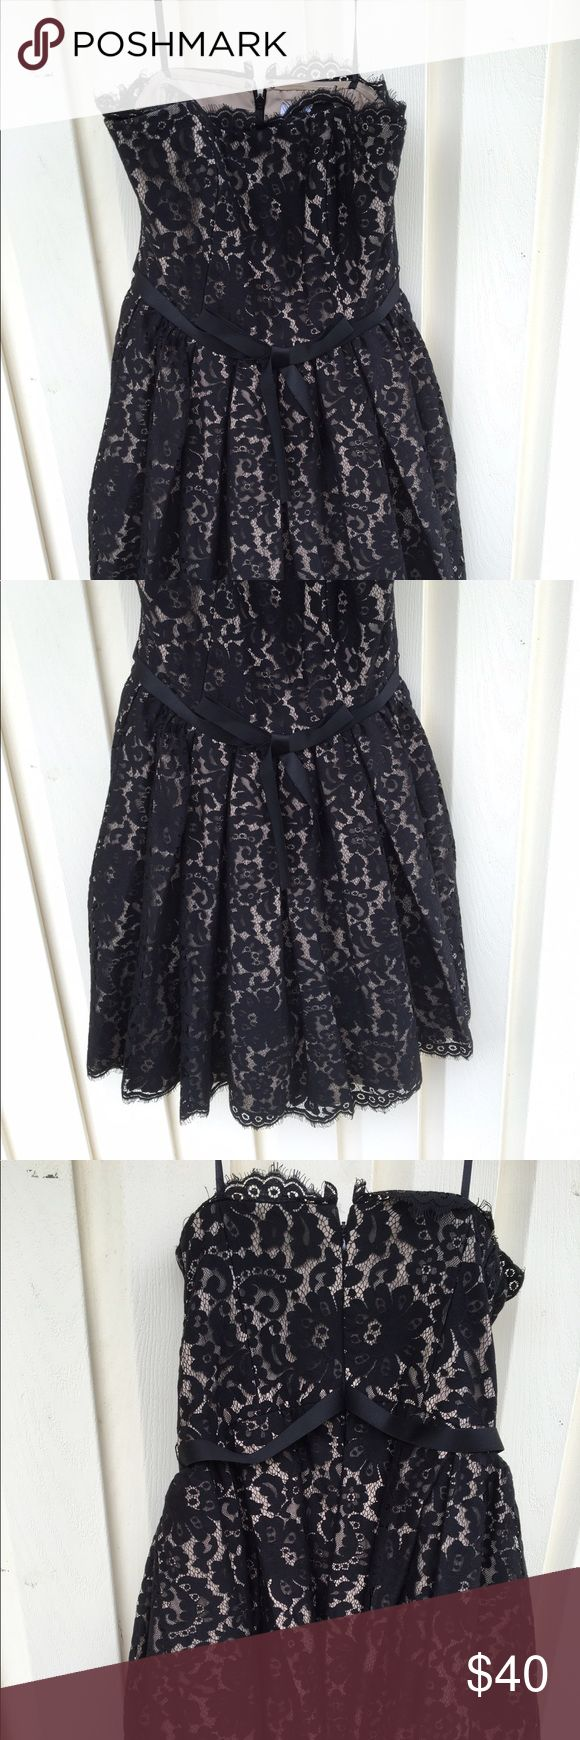 Black Illusion Lace Neiman Marcus Strapless Dress Black illusion lace strapless dress by Neiman Marcus/ Robert Rodriguez for Target. Has tan lining and boning in the bodice with lace detailing around the edges. Includes built in bra strap piece. Good condition no rips, stains, or tears. Fits size 6 or S. Neiman Marcus Dresses Strapless